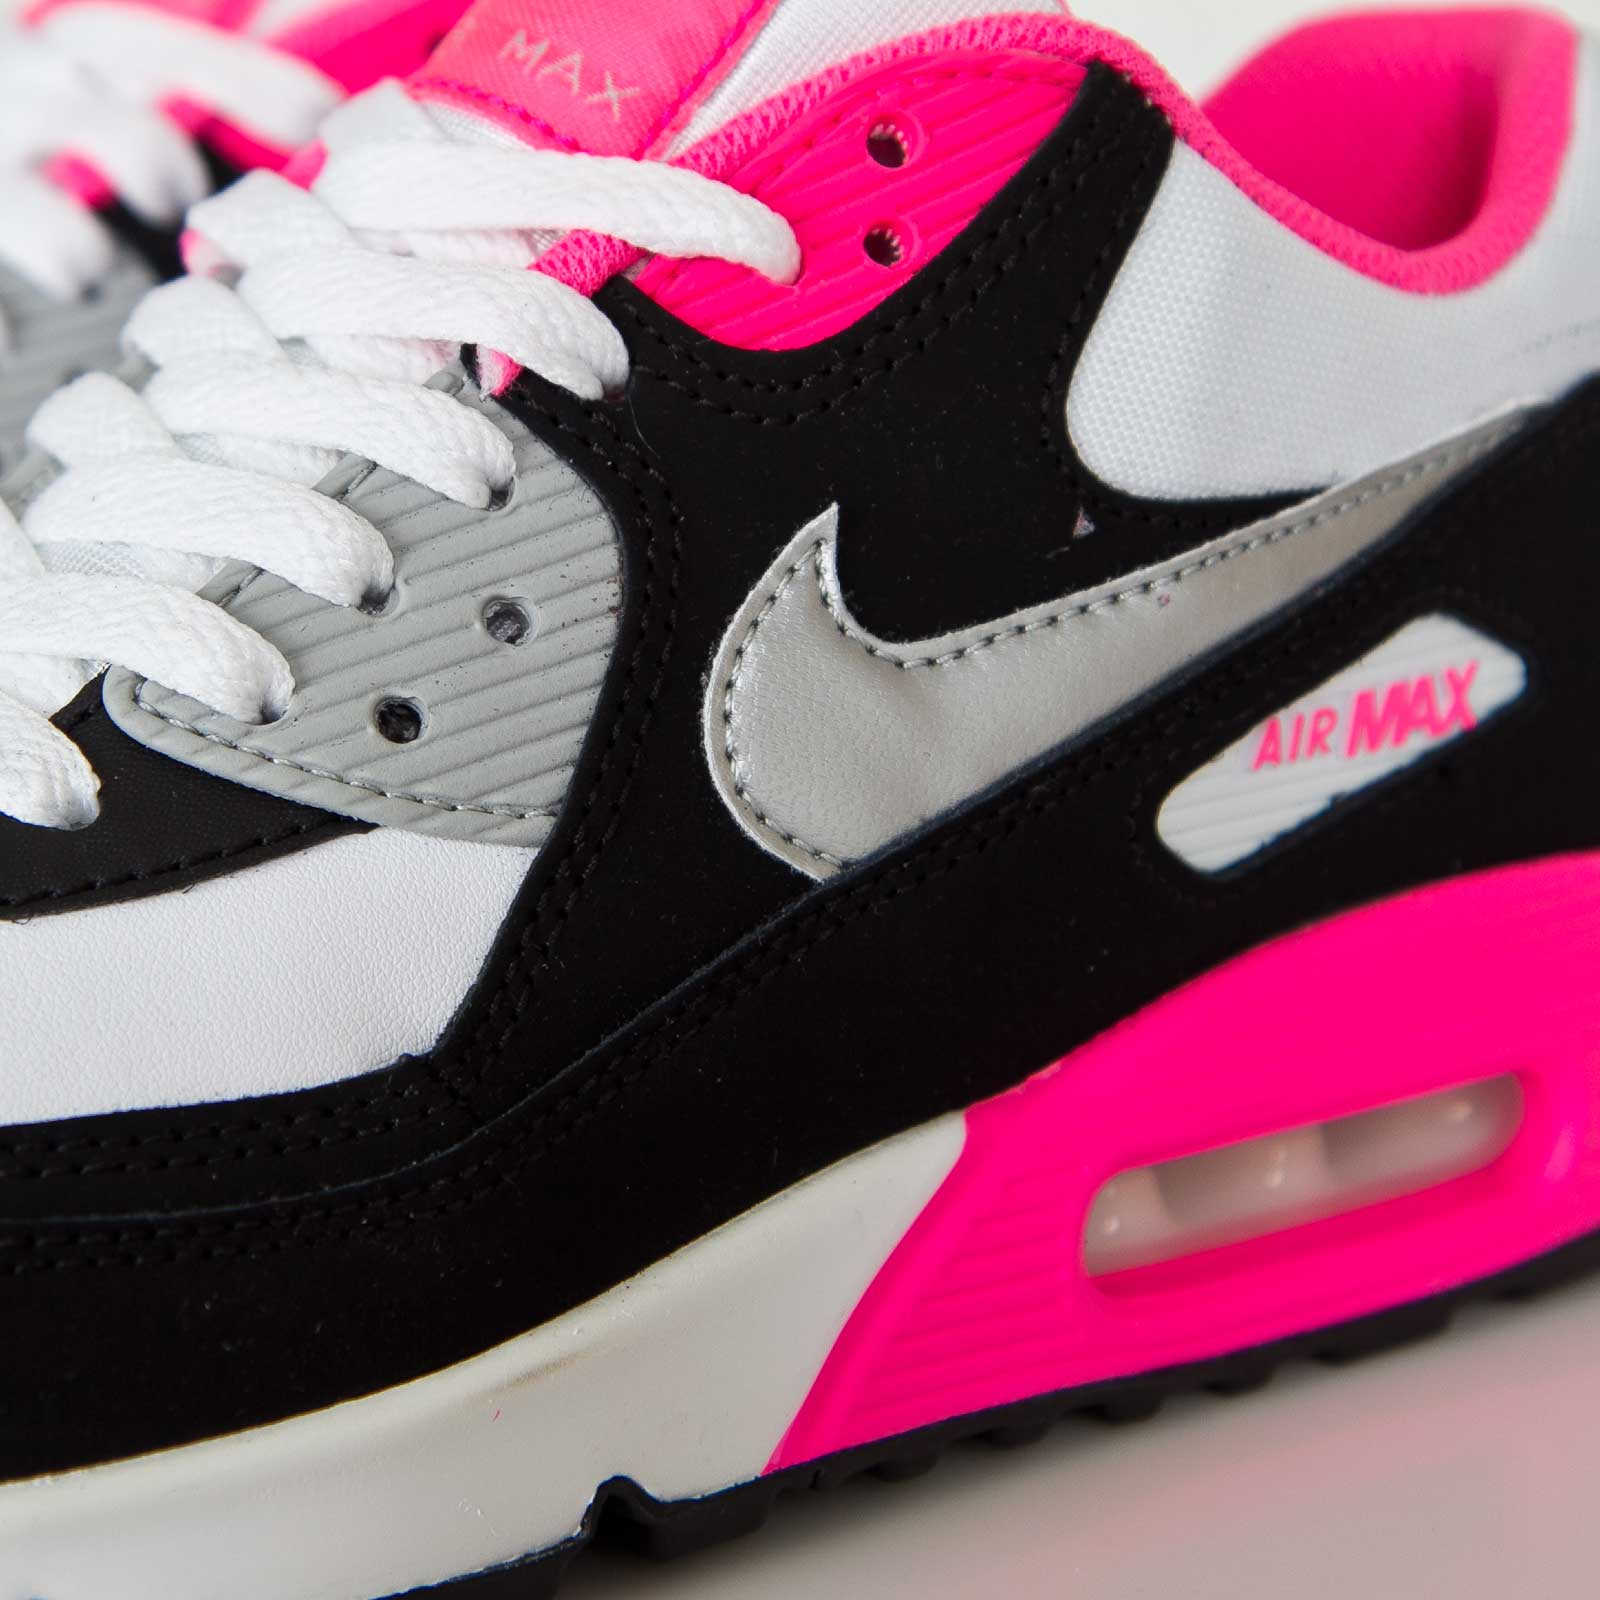 Nike Air Max 90 GS Nike Air Max 90 2007 GS in black and pink